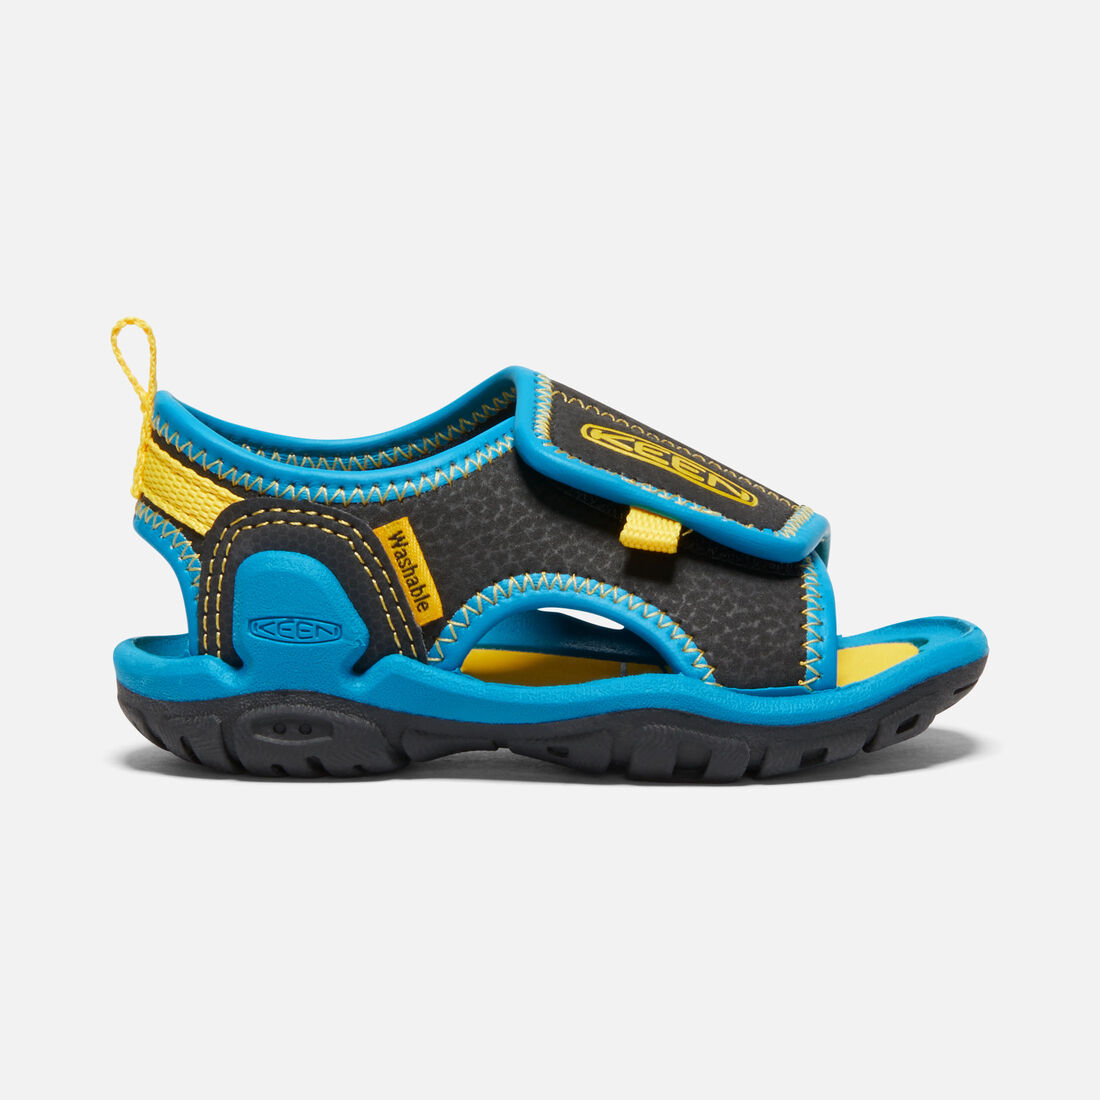 Toddlers' Knotch River Open-Toe Sandal in Black/Vivid Blue - large view.